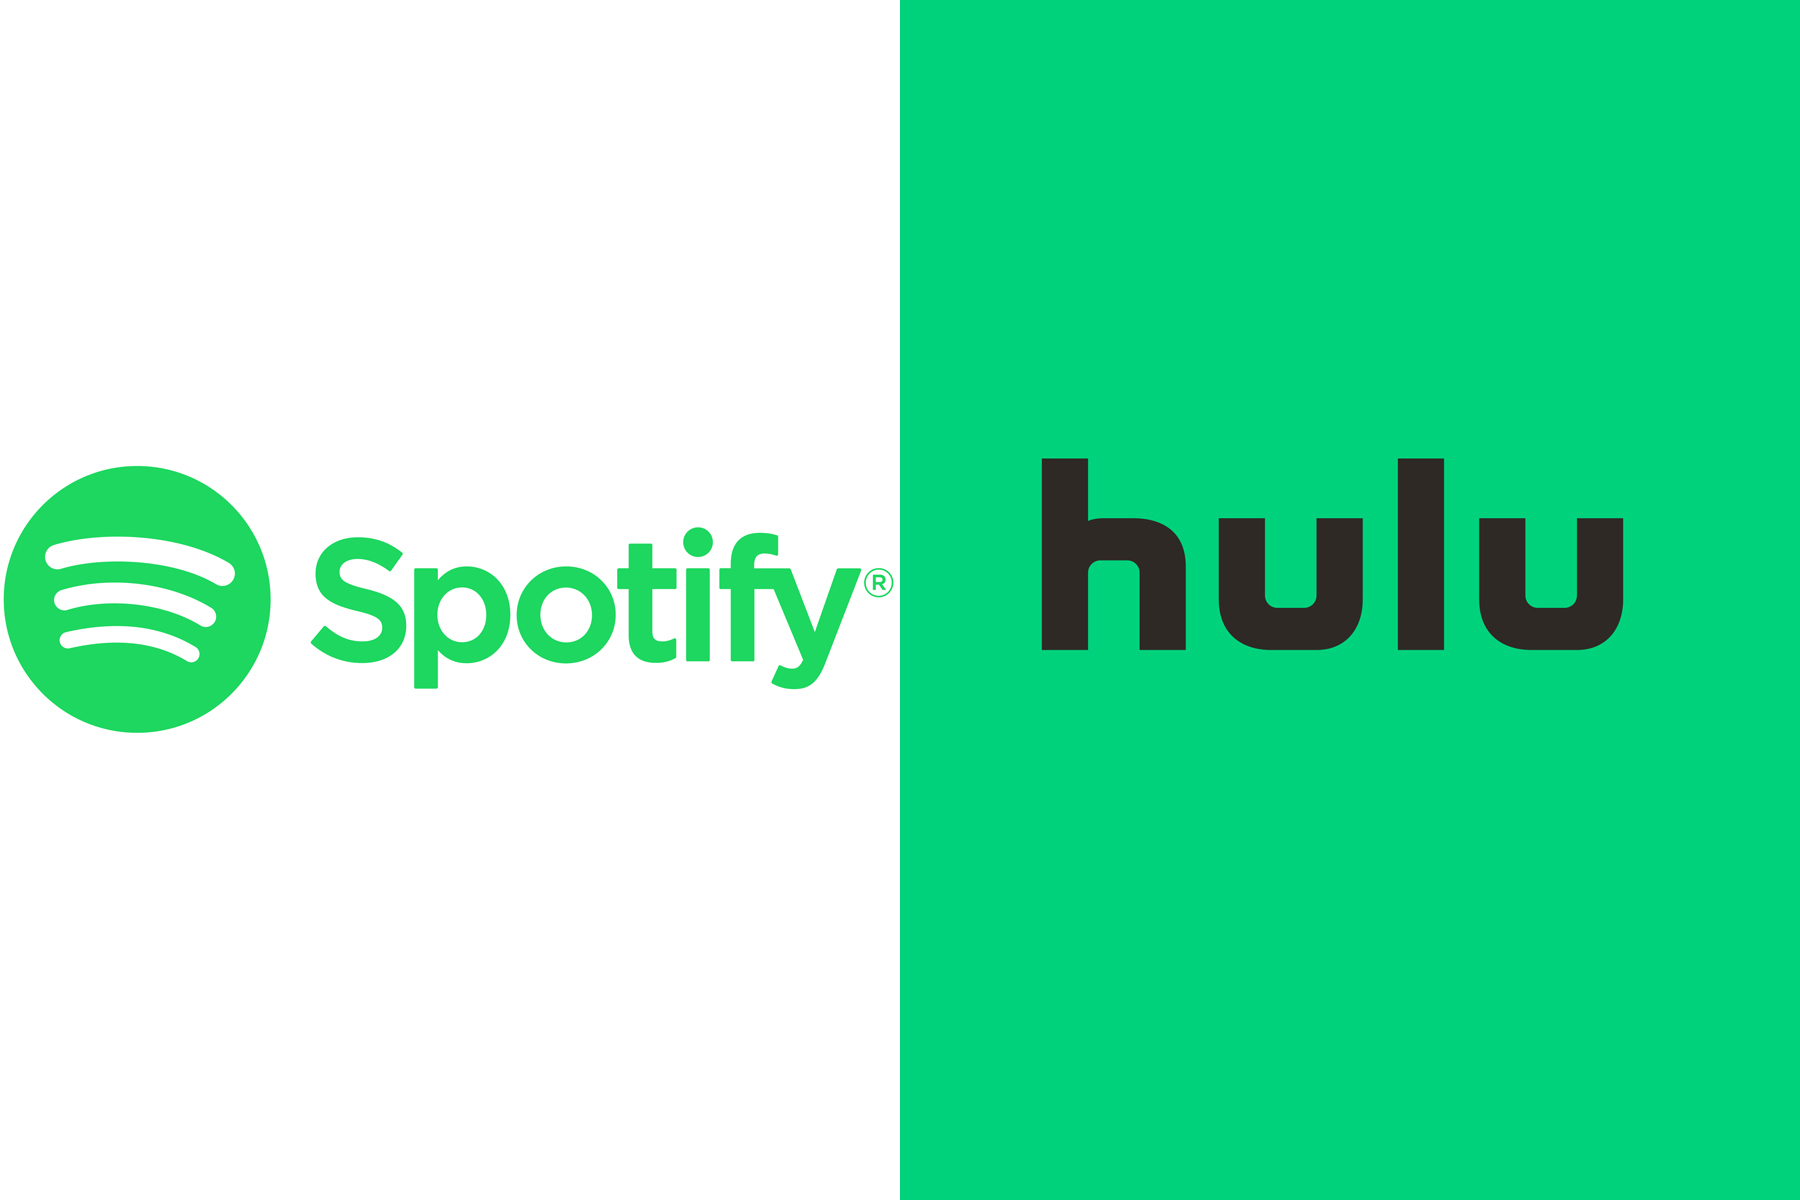 spotify student deal with hulu